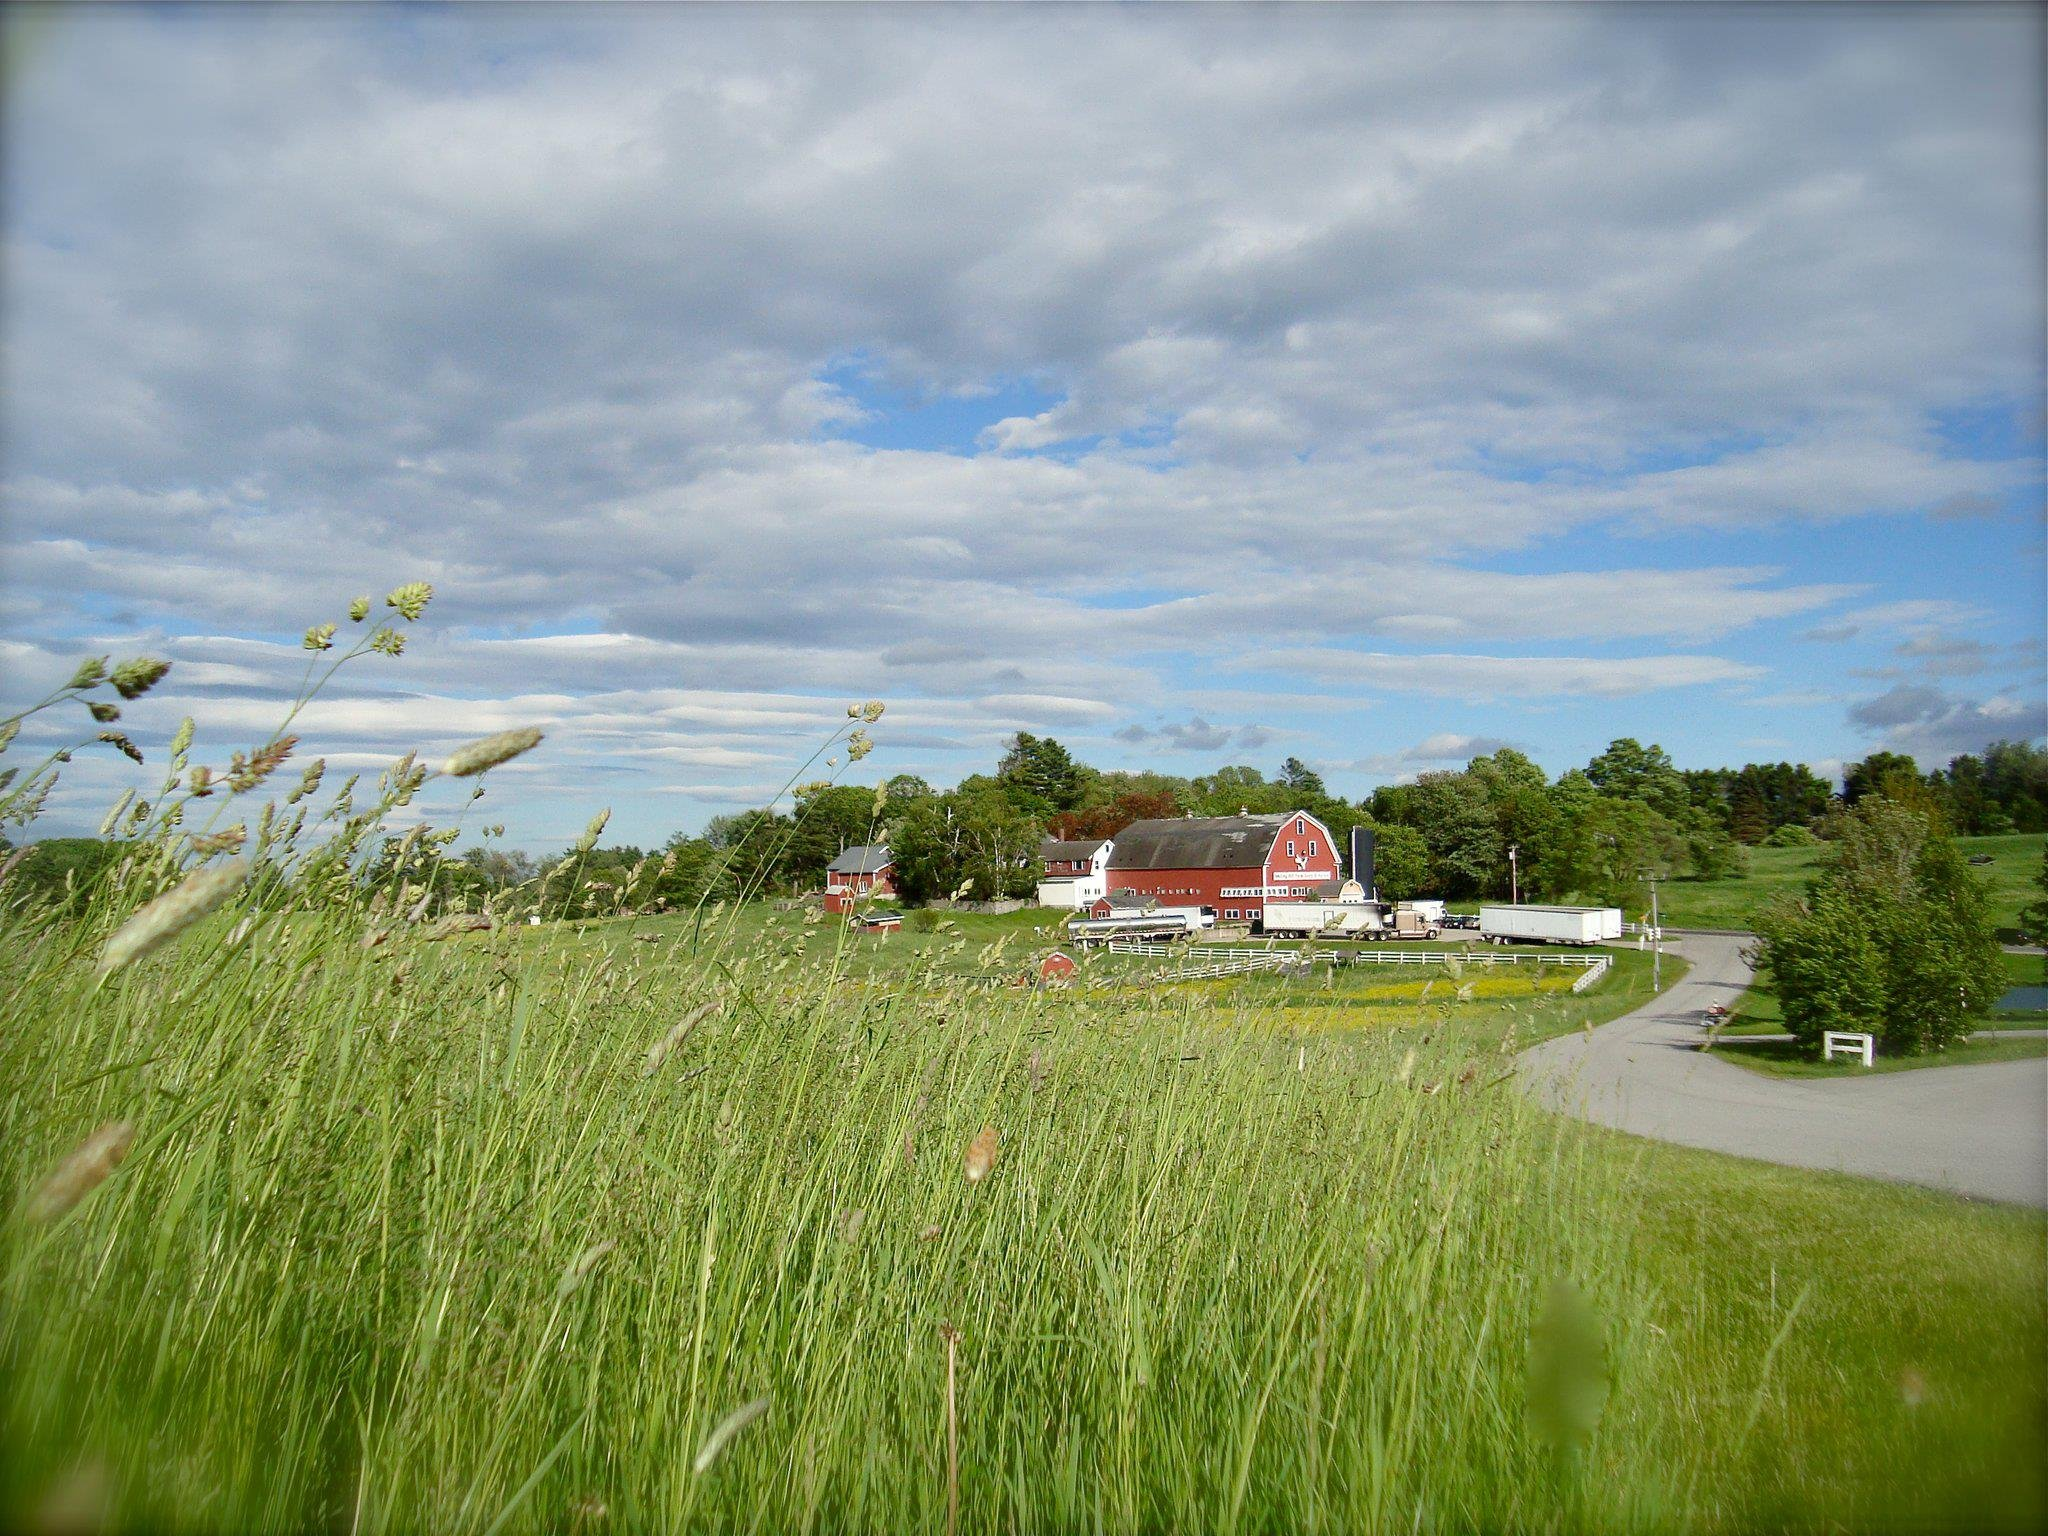 Summer on Farm includes many activities, such as our Barnyard Petting Area which is open daily 9-5 from May-October.